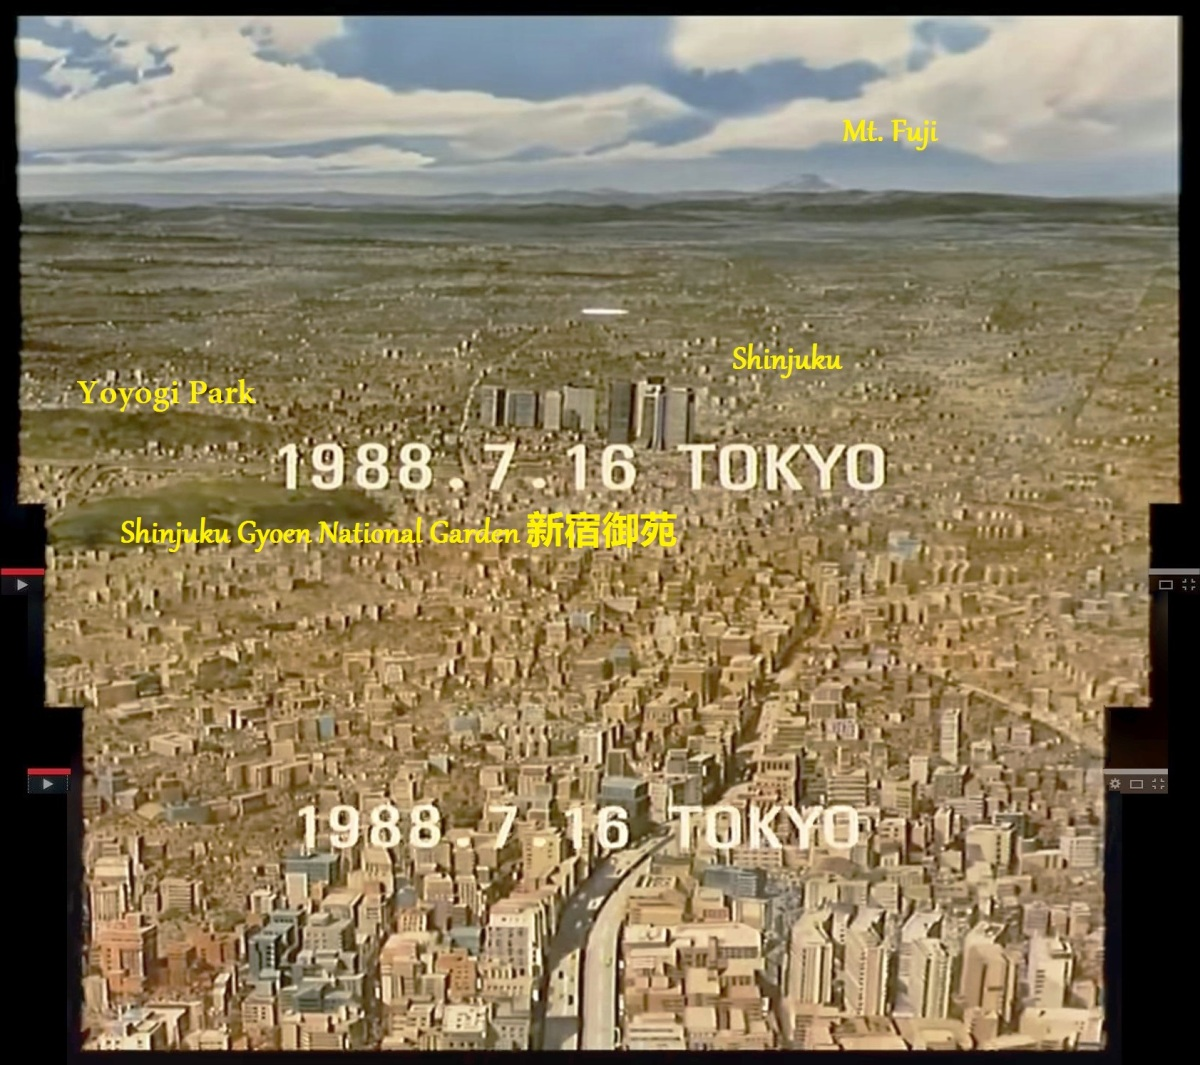 Where did the explosion start in Akira?